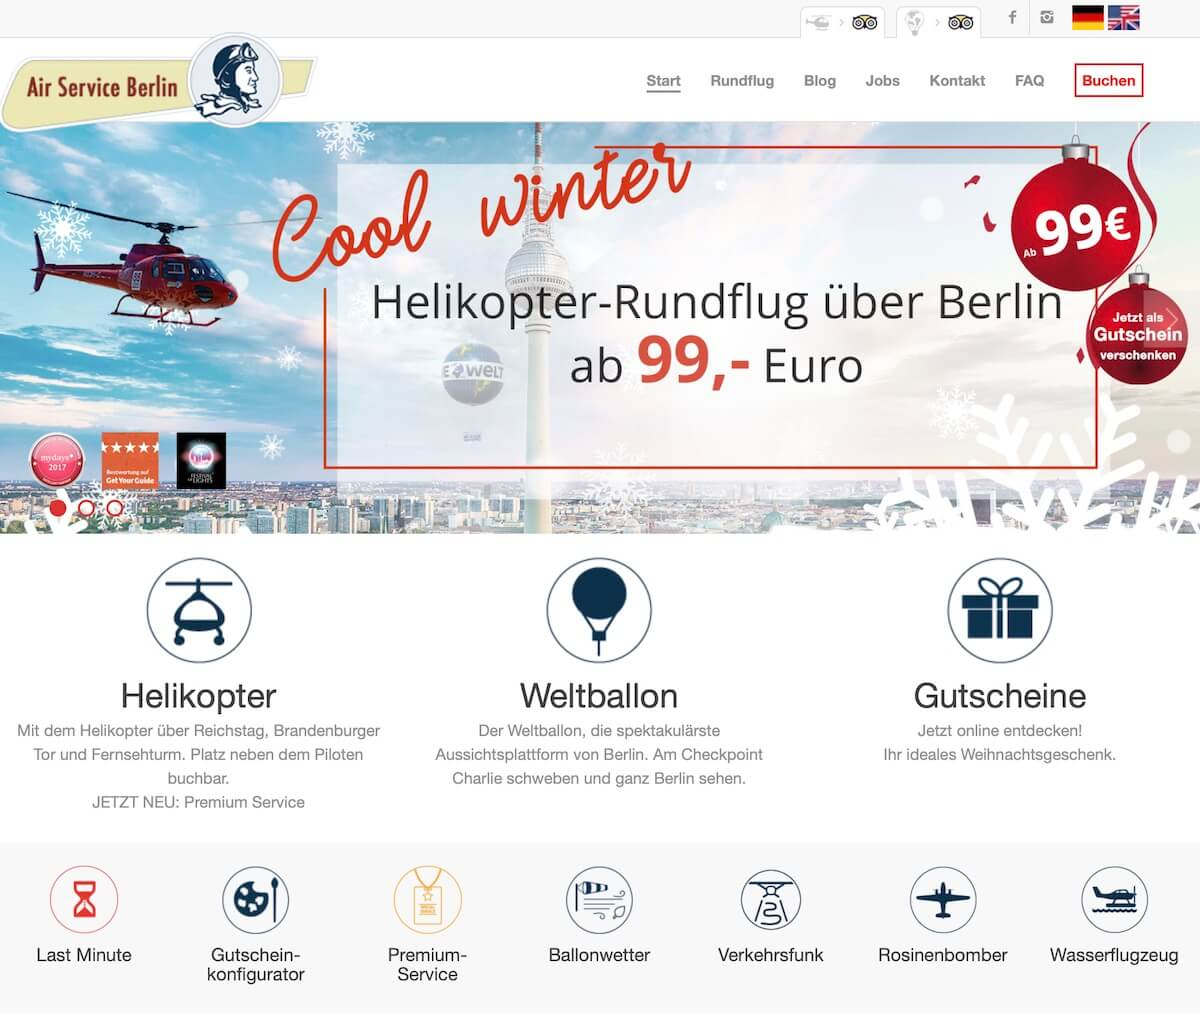 bookingkit-marketing-weihnachten-beispiel-air-service-berlin